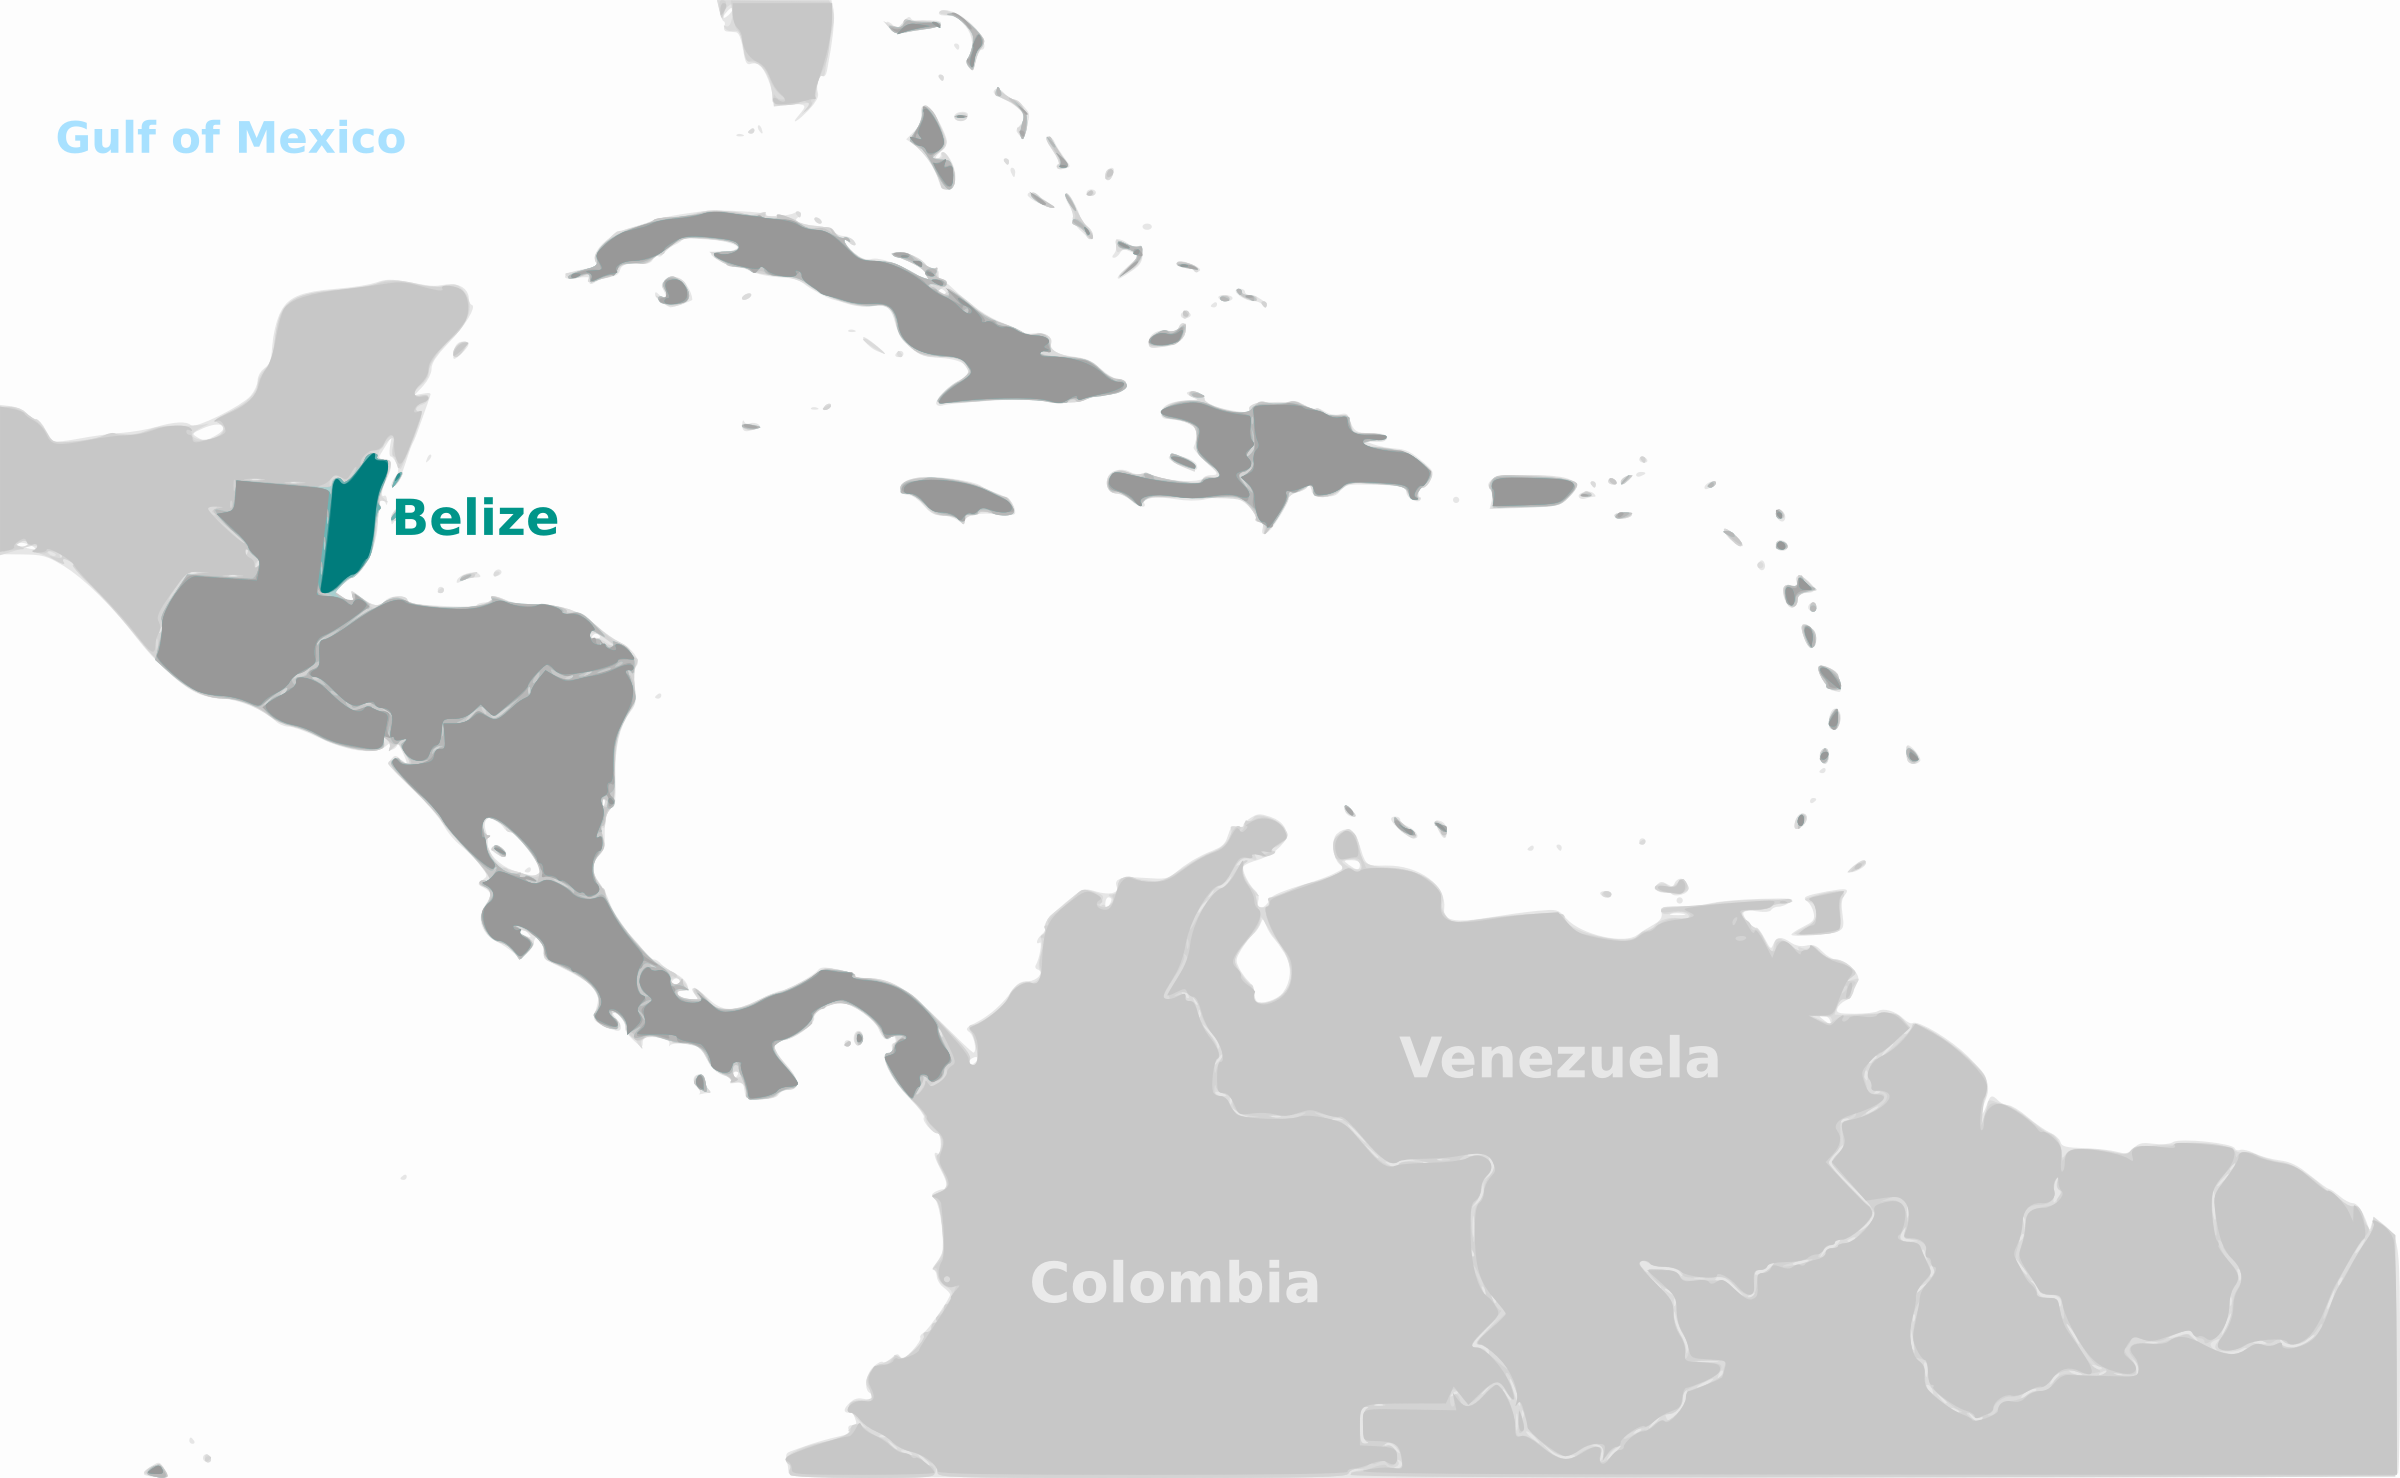 Belize location label by wpclipart